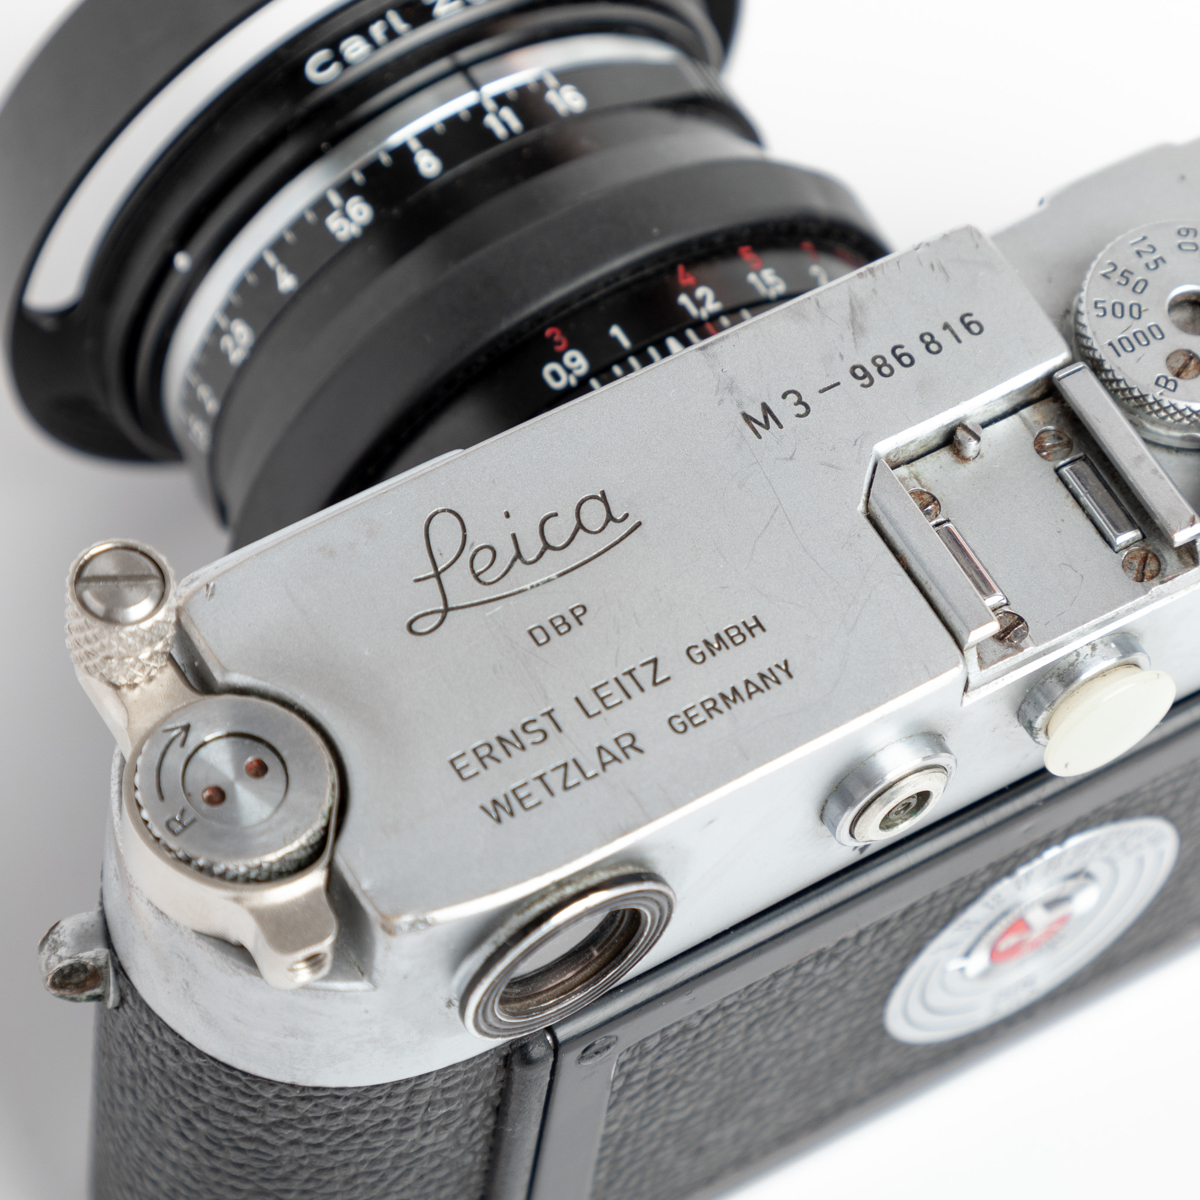 Silver chrome Leica M3 - Top plate engraving